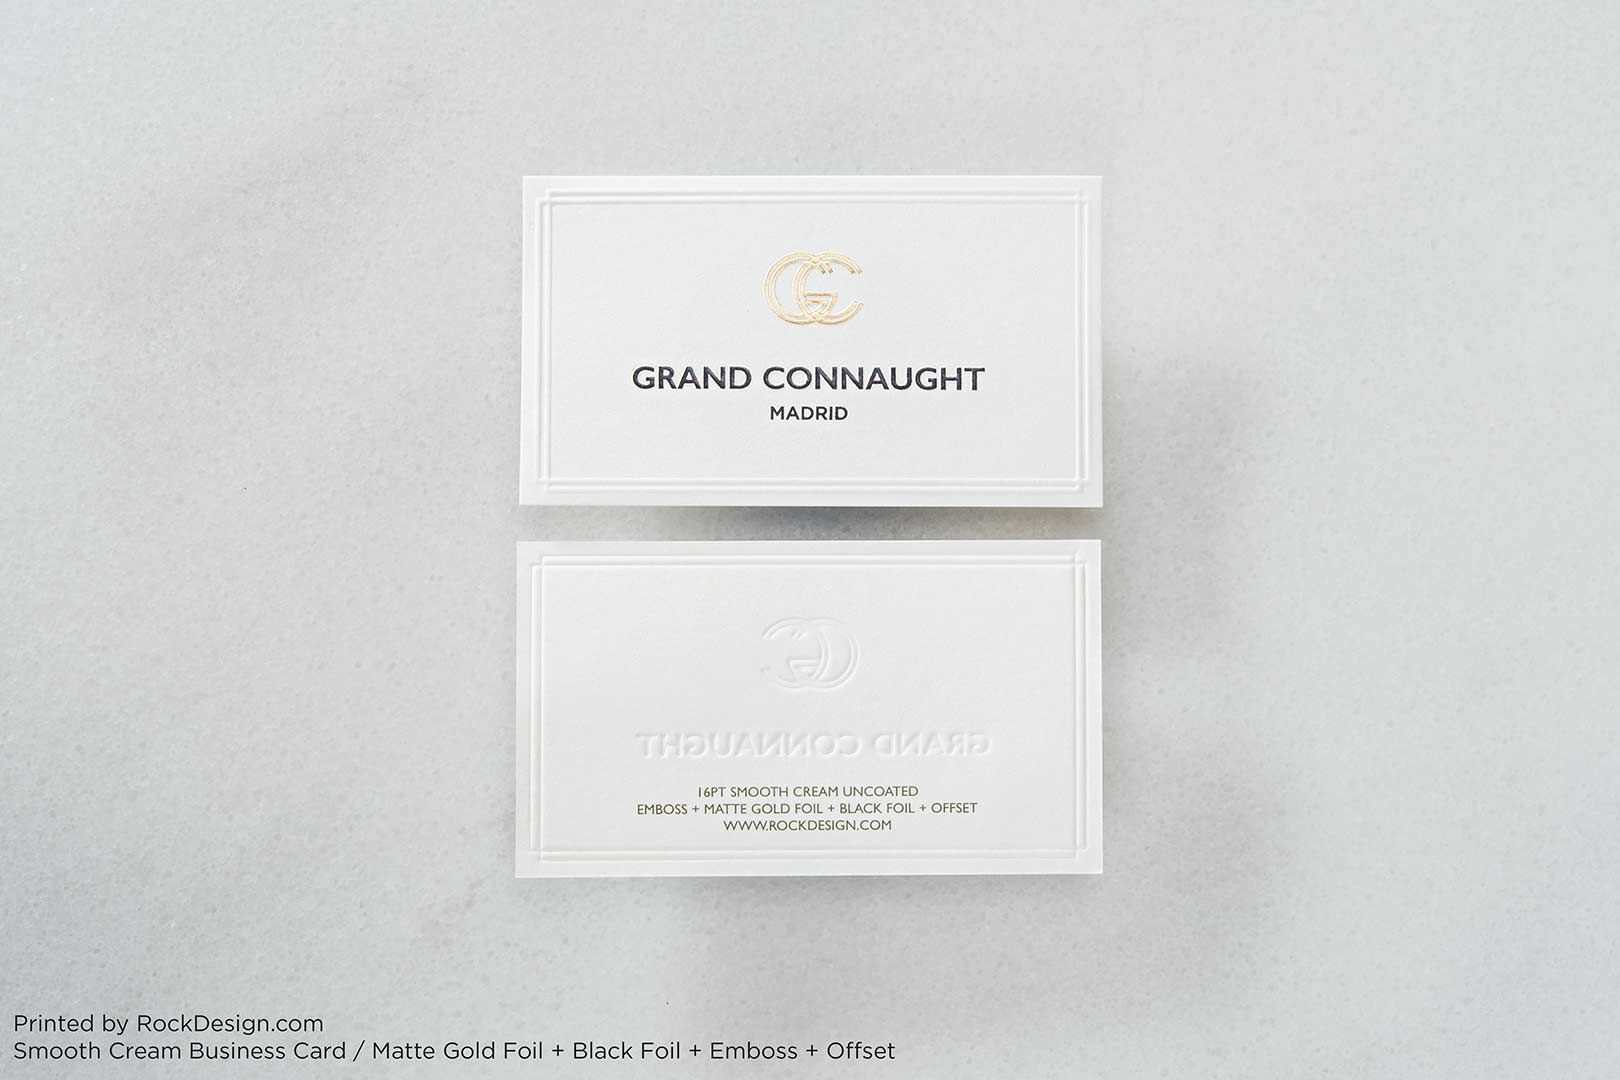 Smooth Uncoated Business Cards | RockDesign Luxury Business Card ...